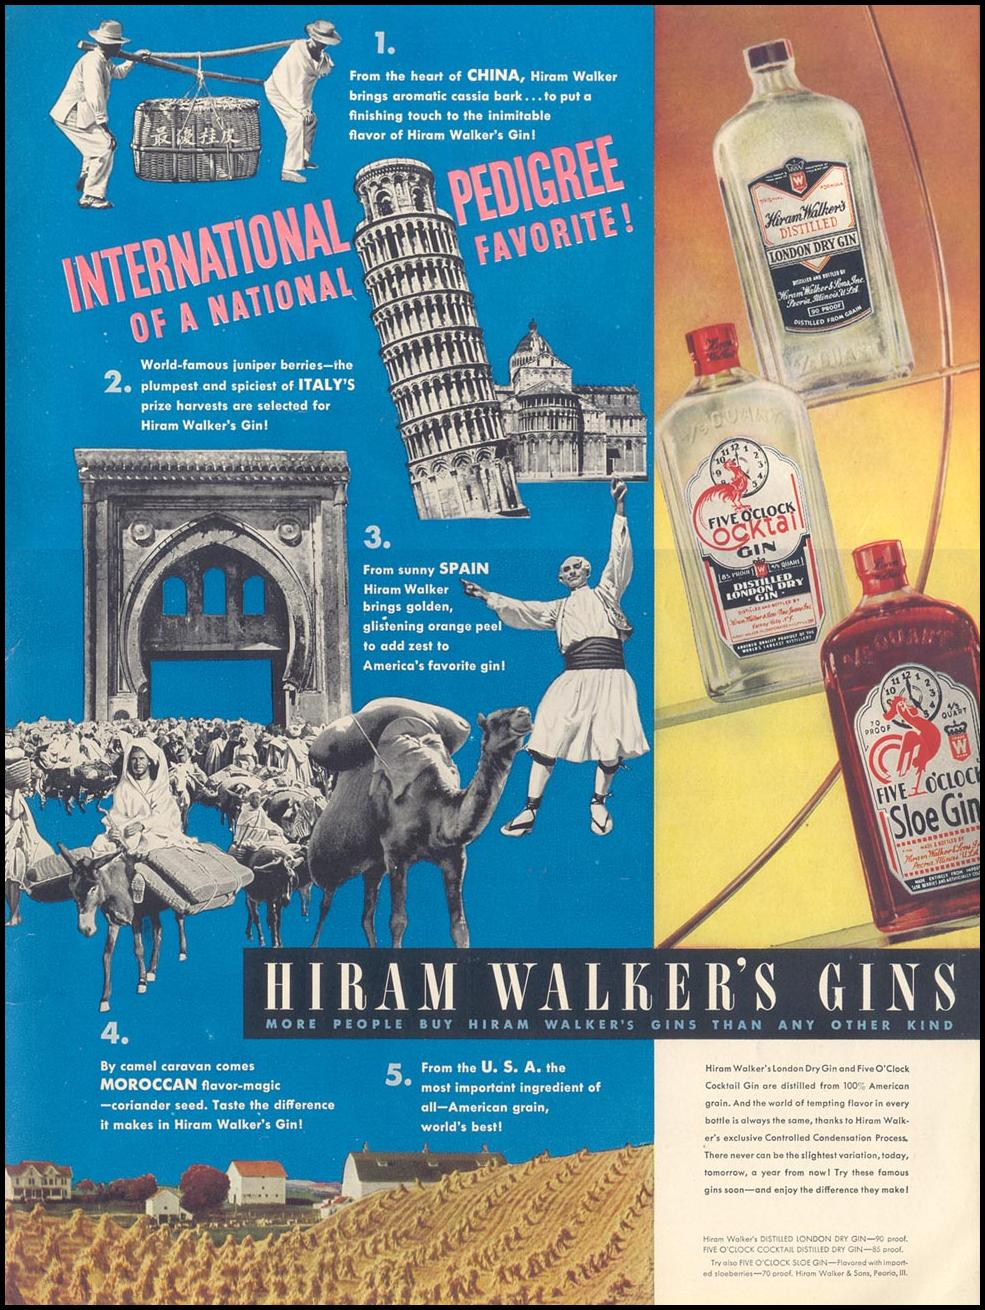 HIRAM WALKER'S GINS LIFE 08/02/1937 INSIDE BACK